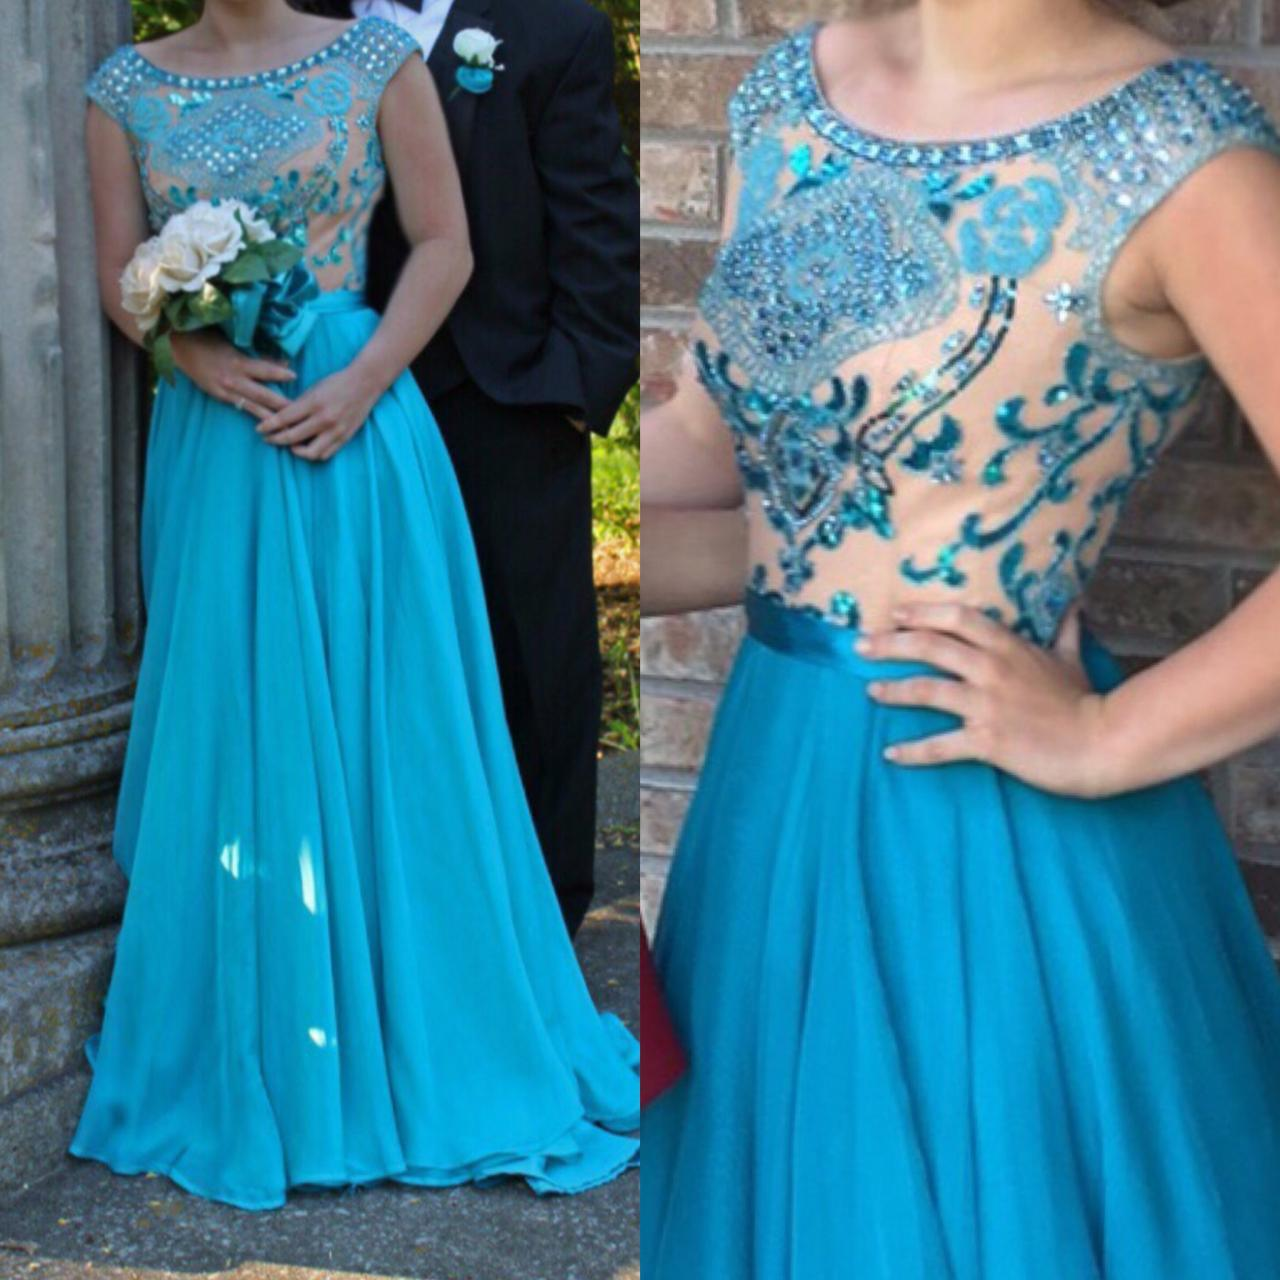 Fashion_Long_Prom_Dresses_Prom_Dress_Evening_Gown_For_Wedding_Party